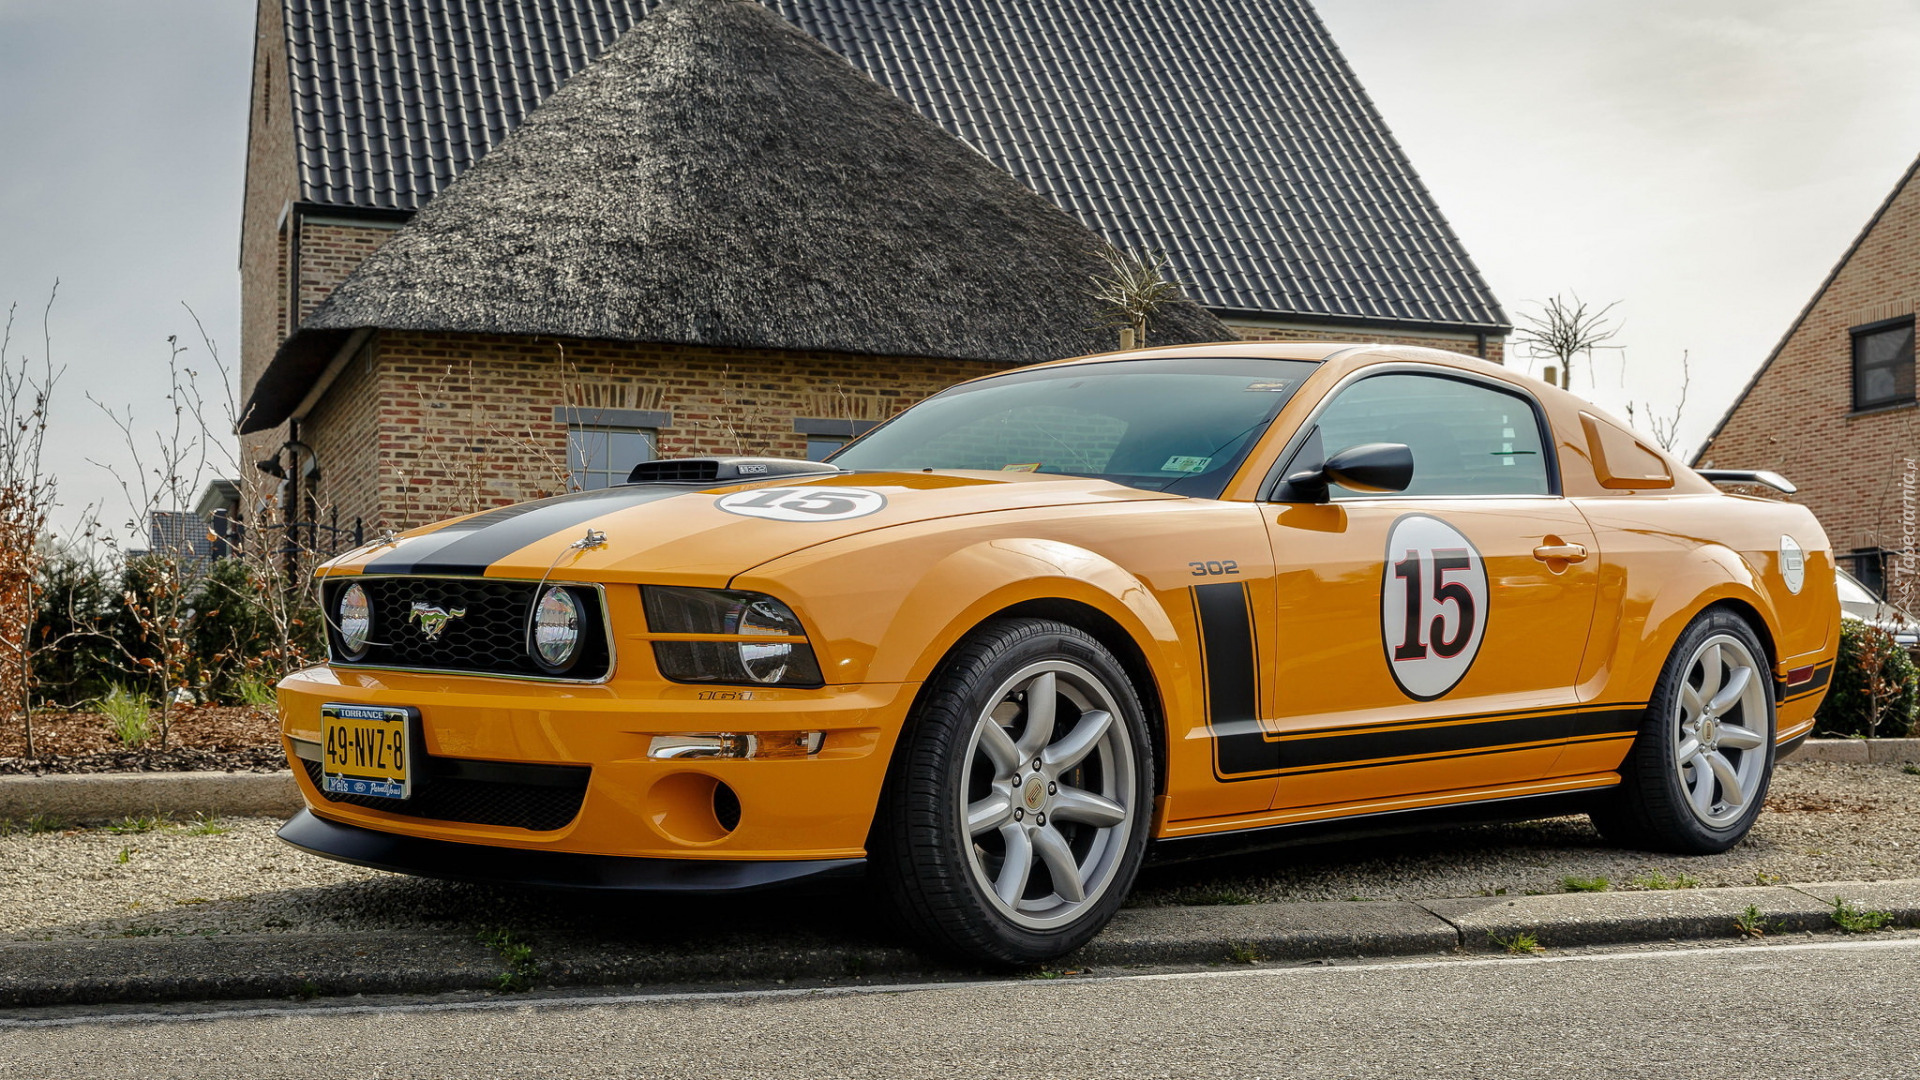 Ford Mustang 302, Saleen